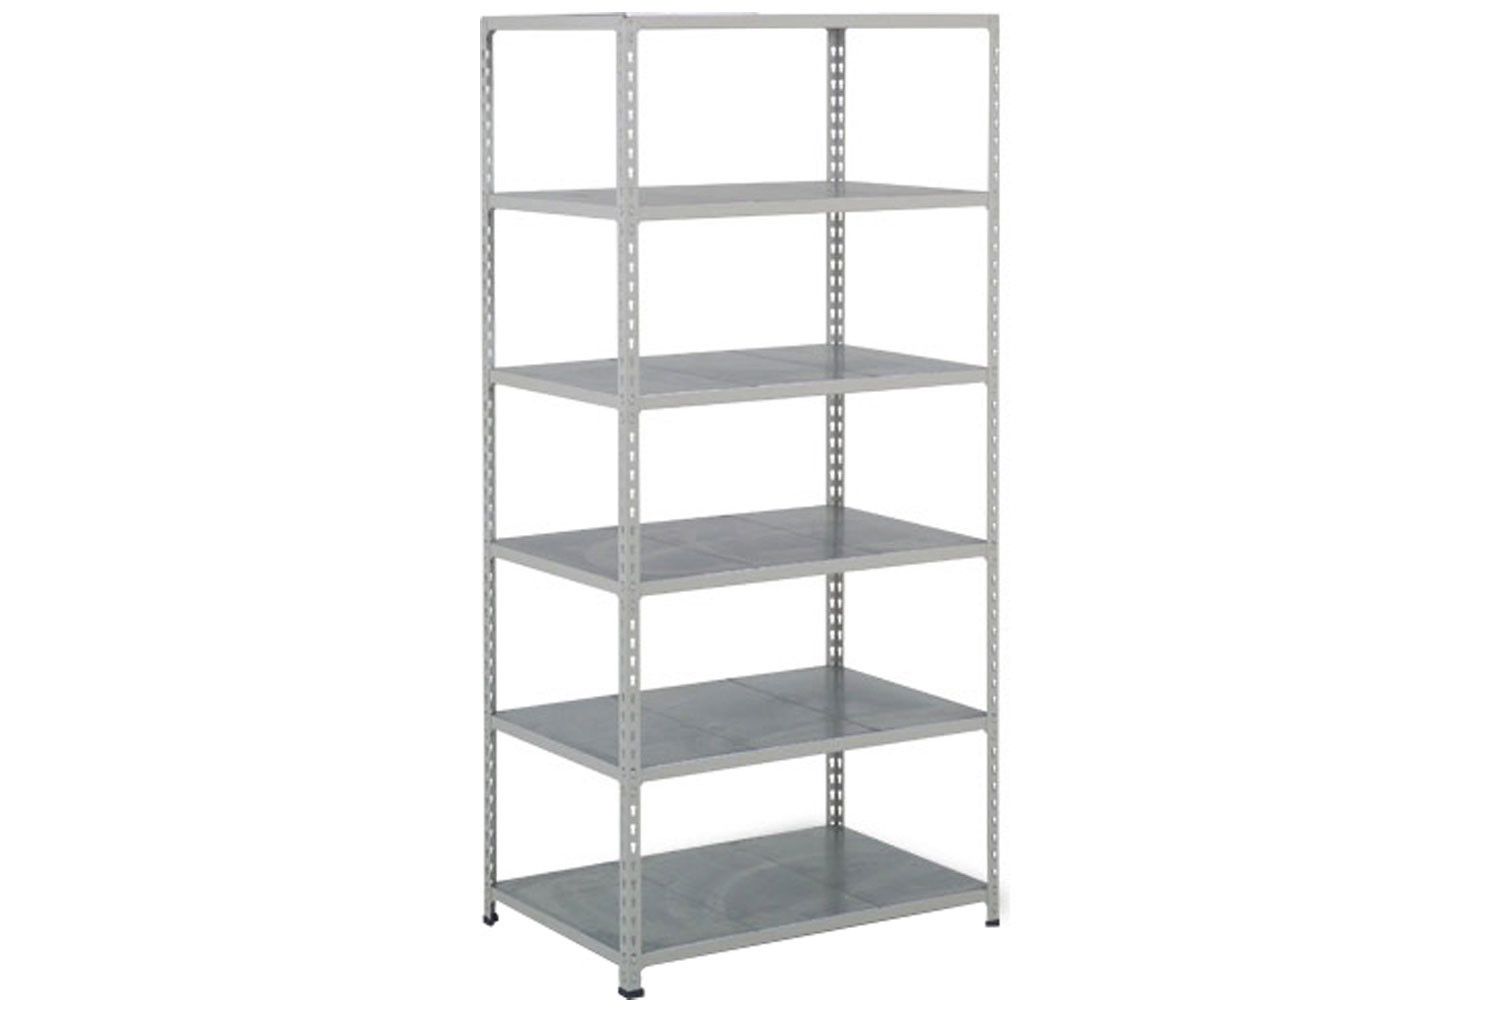 Rapid 2 Shelving With 6 Galvanized Shelves 915wx1980h (Grey)